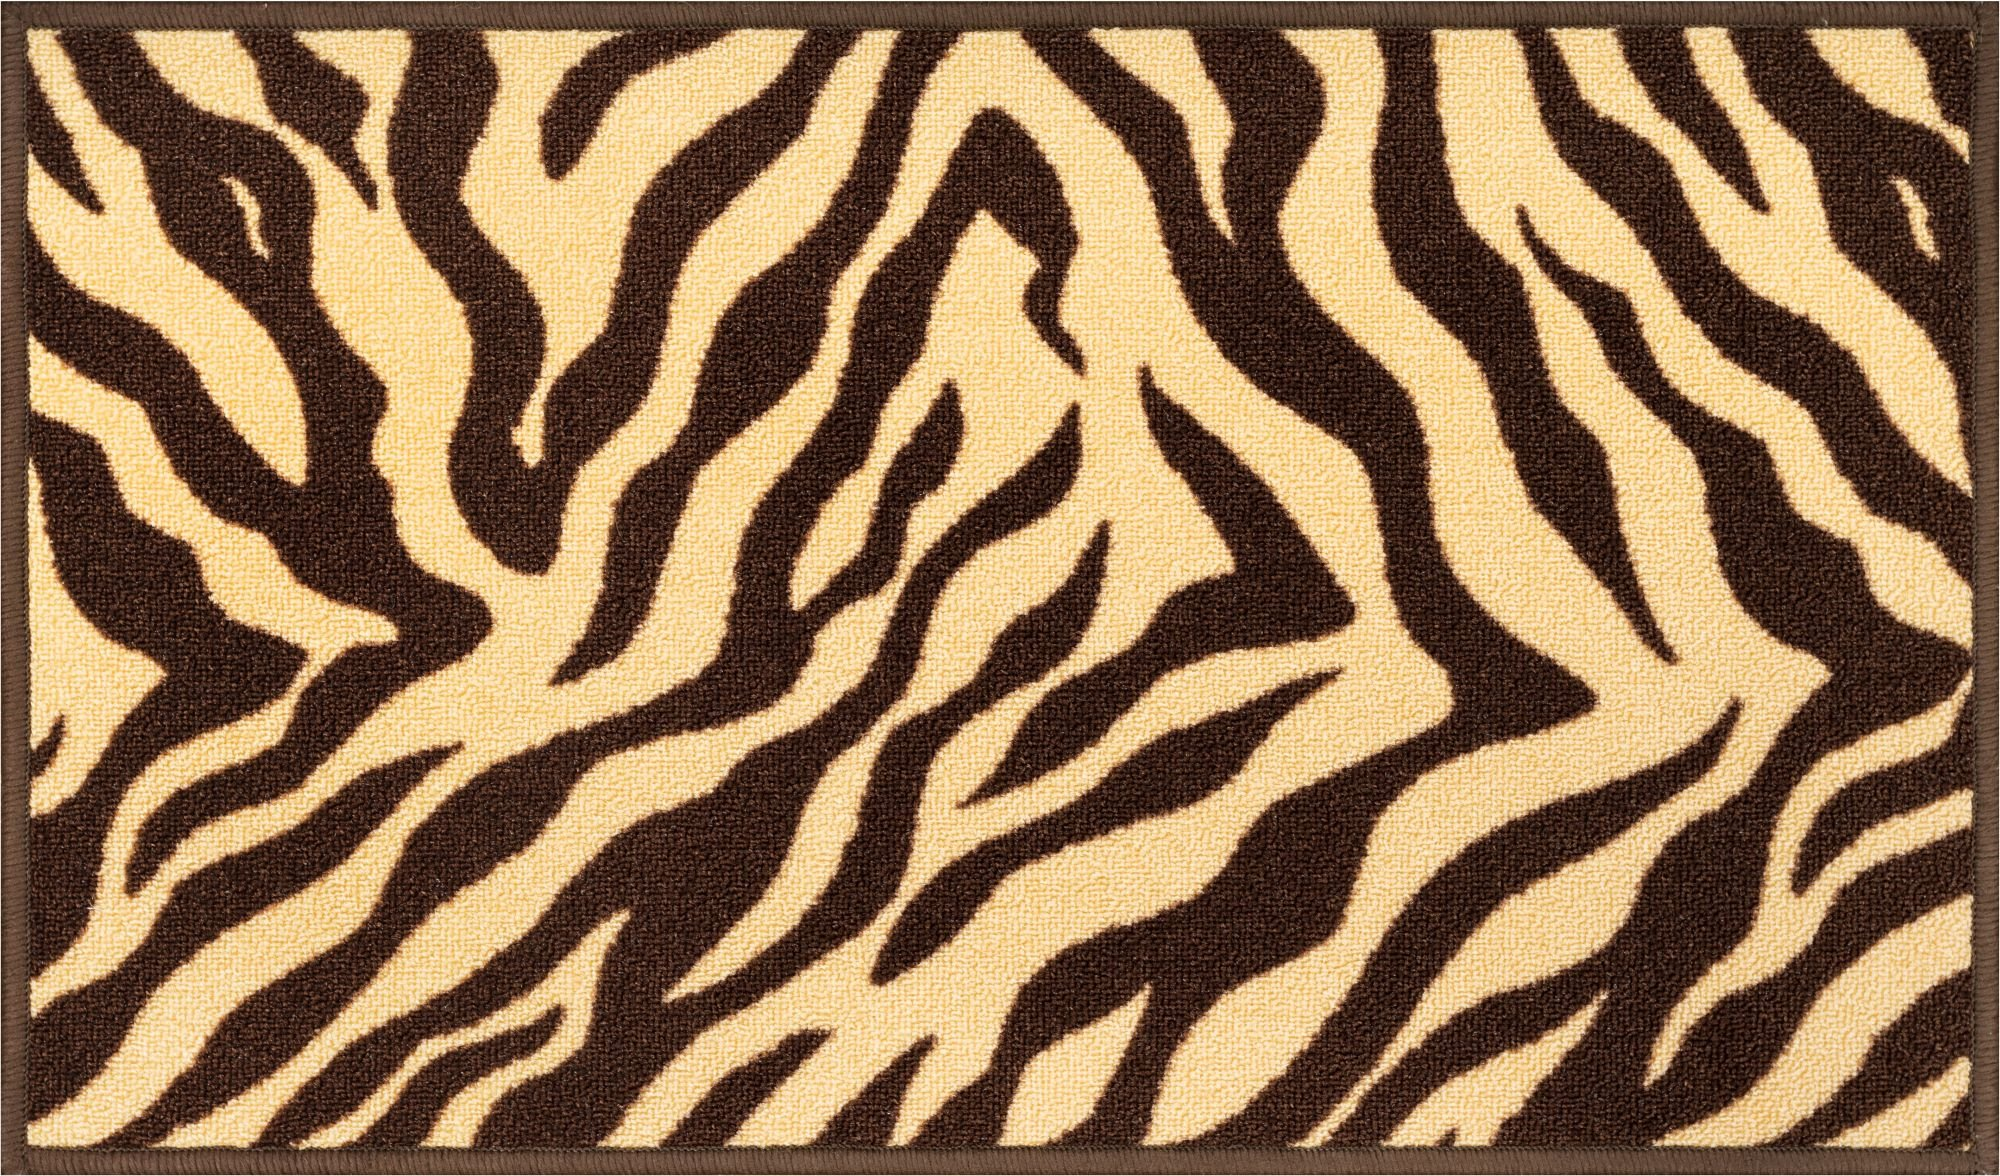 Well Woven Non-Skid Slip Rubber Back Antibacterial 2x5 (1'8'' x 5') Door Mat Runner Rug Brown Zebra Animal Print Stripes Modern Thin Low Pile Machine Washable Indoor Outdoor Kitchen Hallway Entry by Well Woven (Image #2)